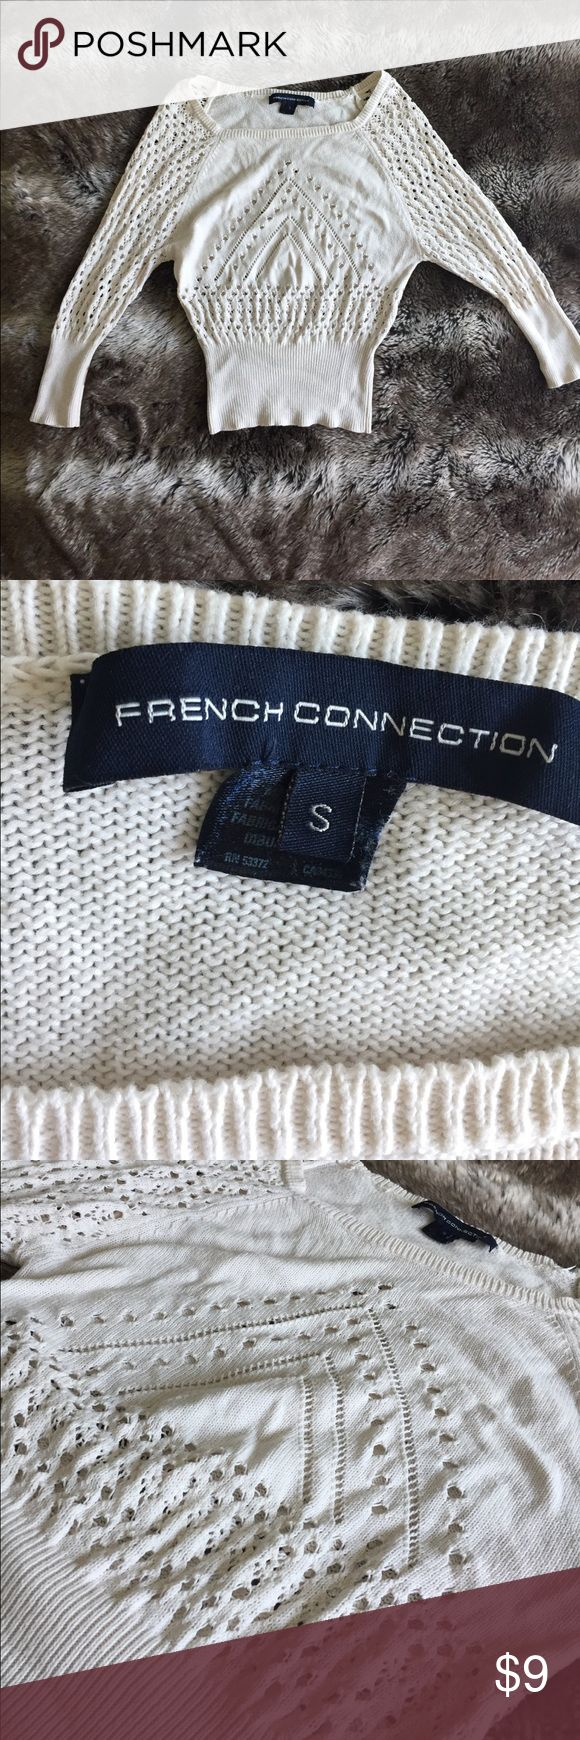 French Connection sweater size S French Connection Sweater. Stretchy and boho chic. Pair with jean short shorts for a easy summer look. Throw on strappy sandals and you'd be on trend. French Connection Sweaters